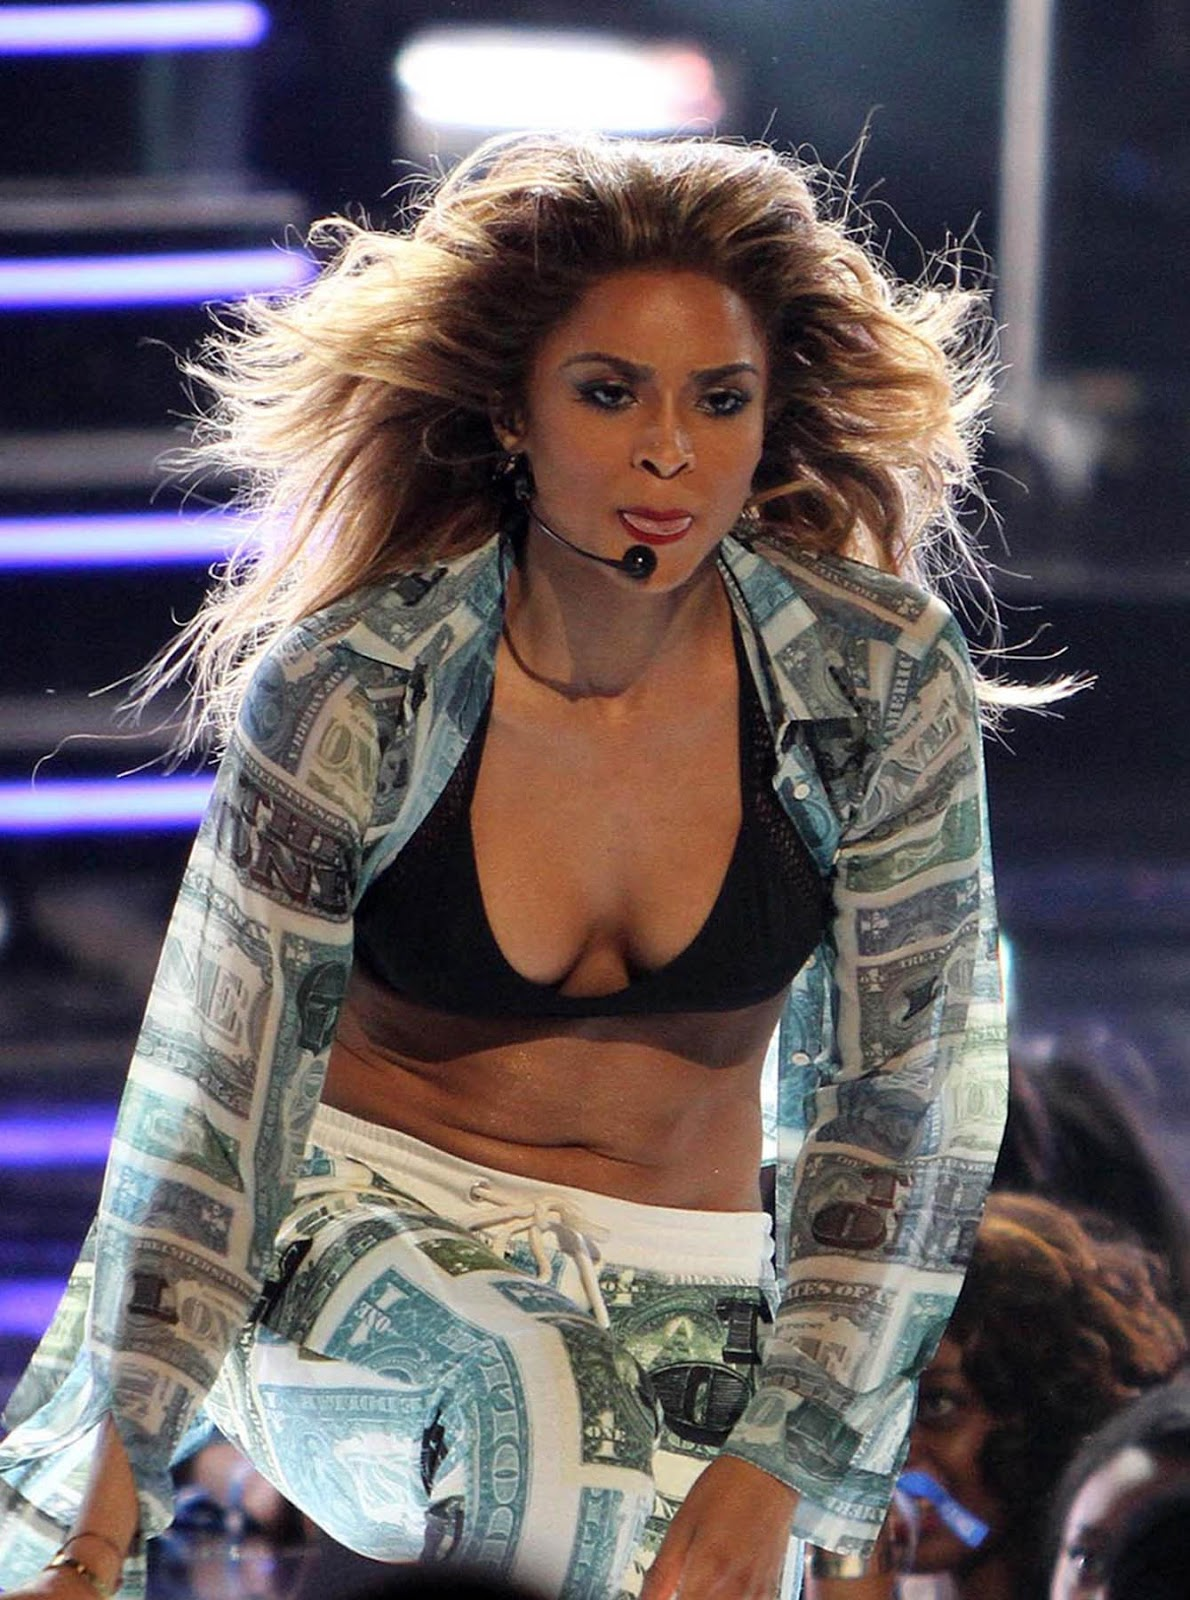 BET Awards - Photo 4 - Pictures - CBS News